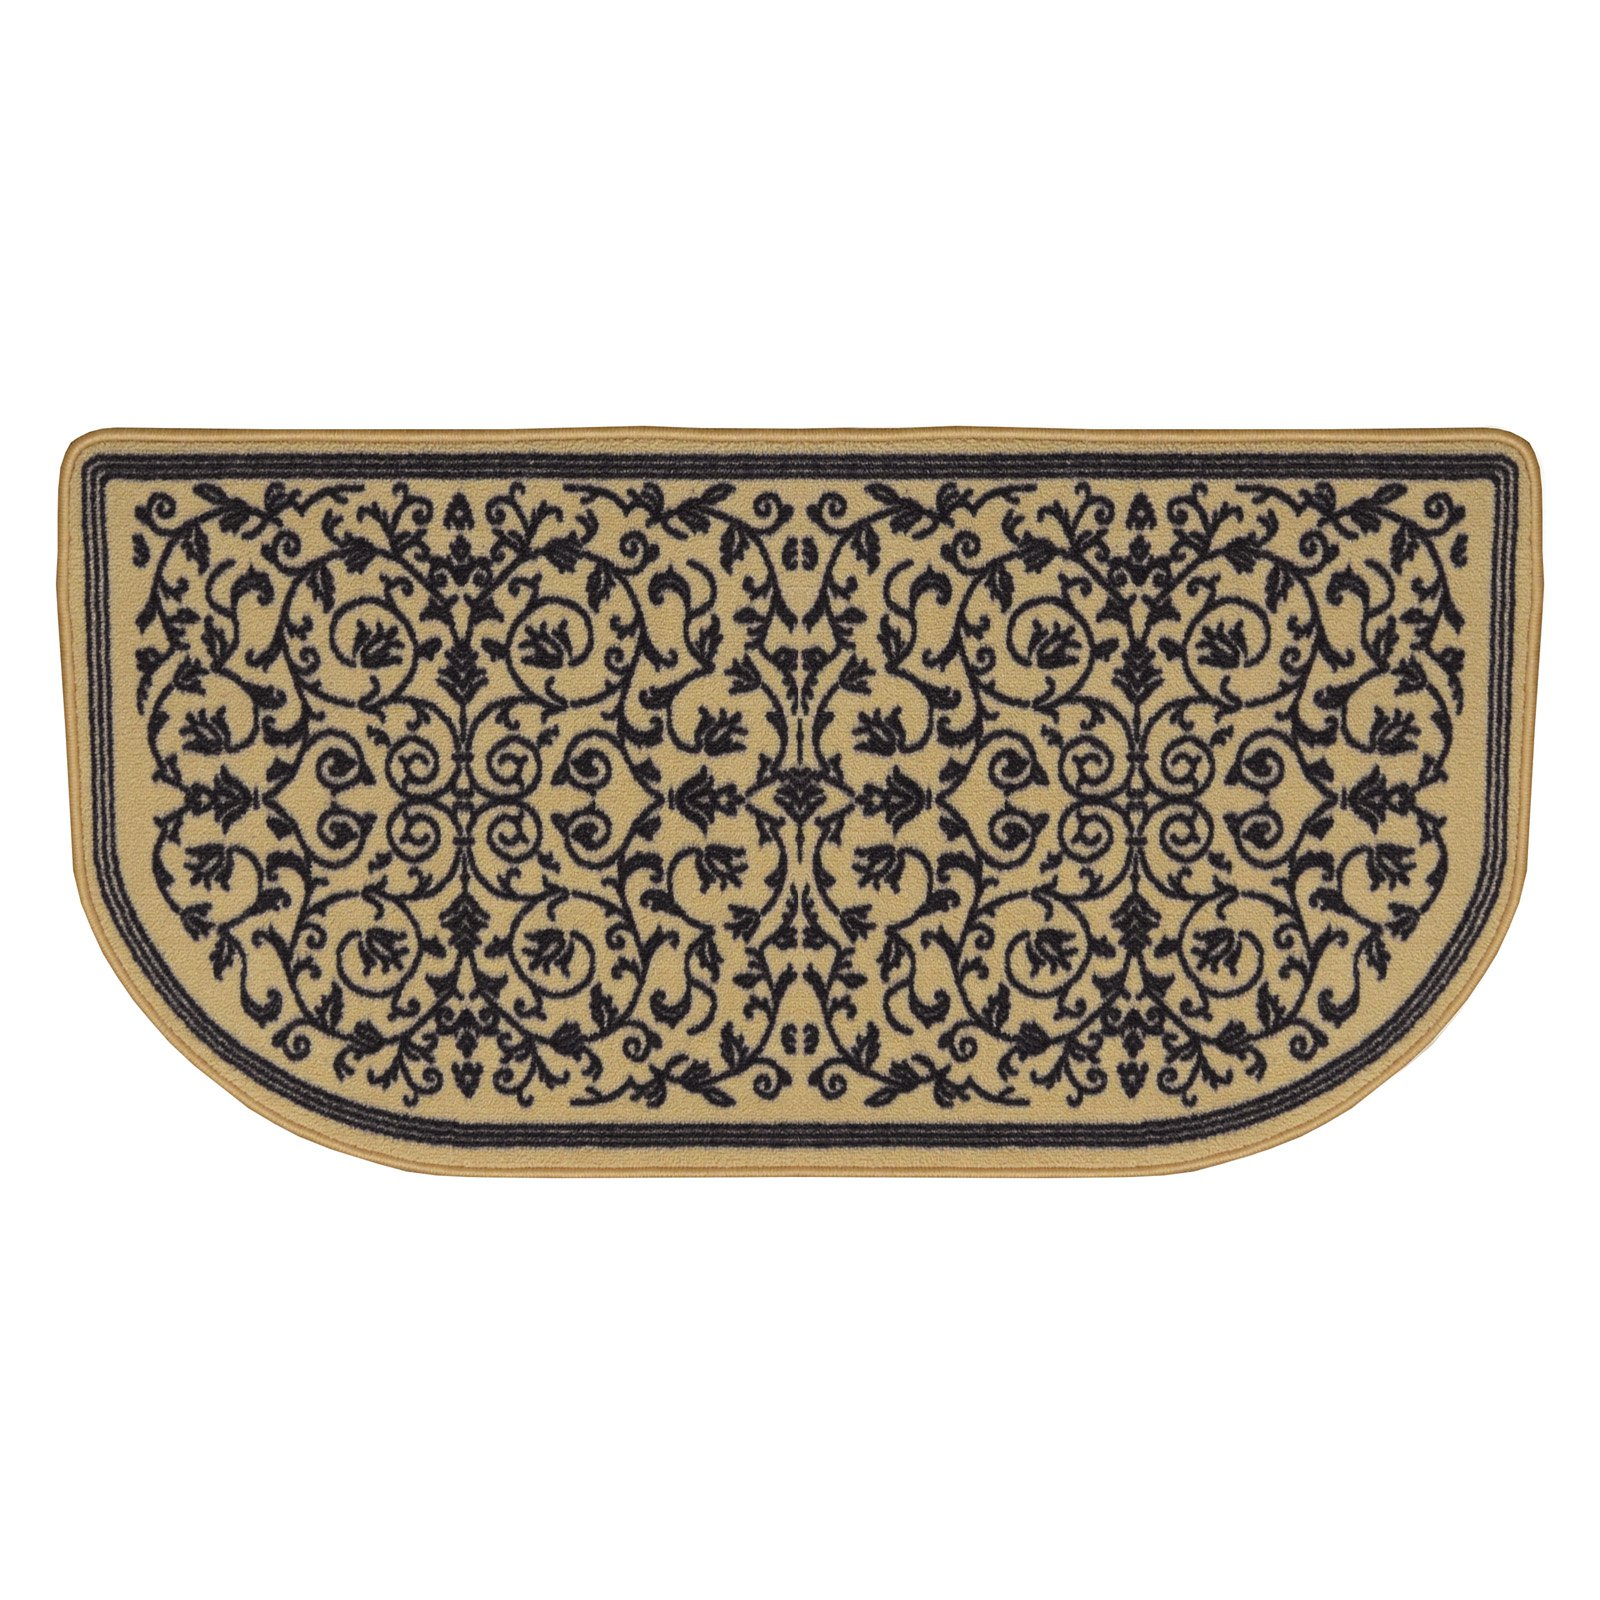 Uniflame Nylon Hearth Rug Scrollwork by Blue Rhino Global Sourcing, LLC